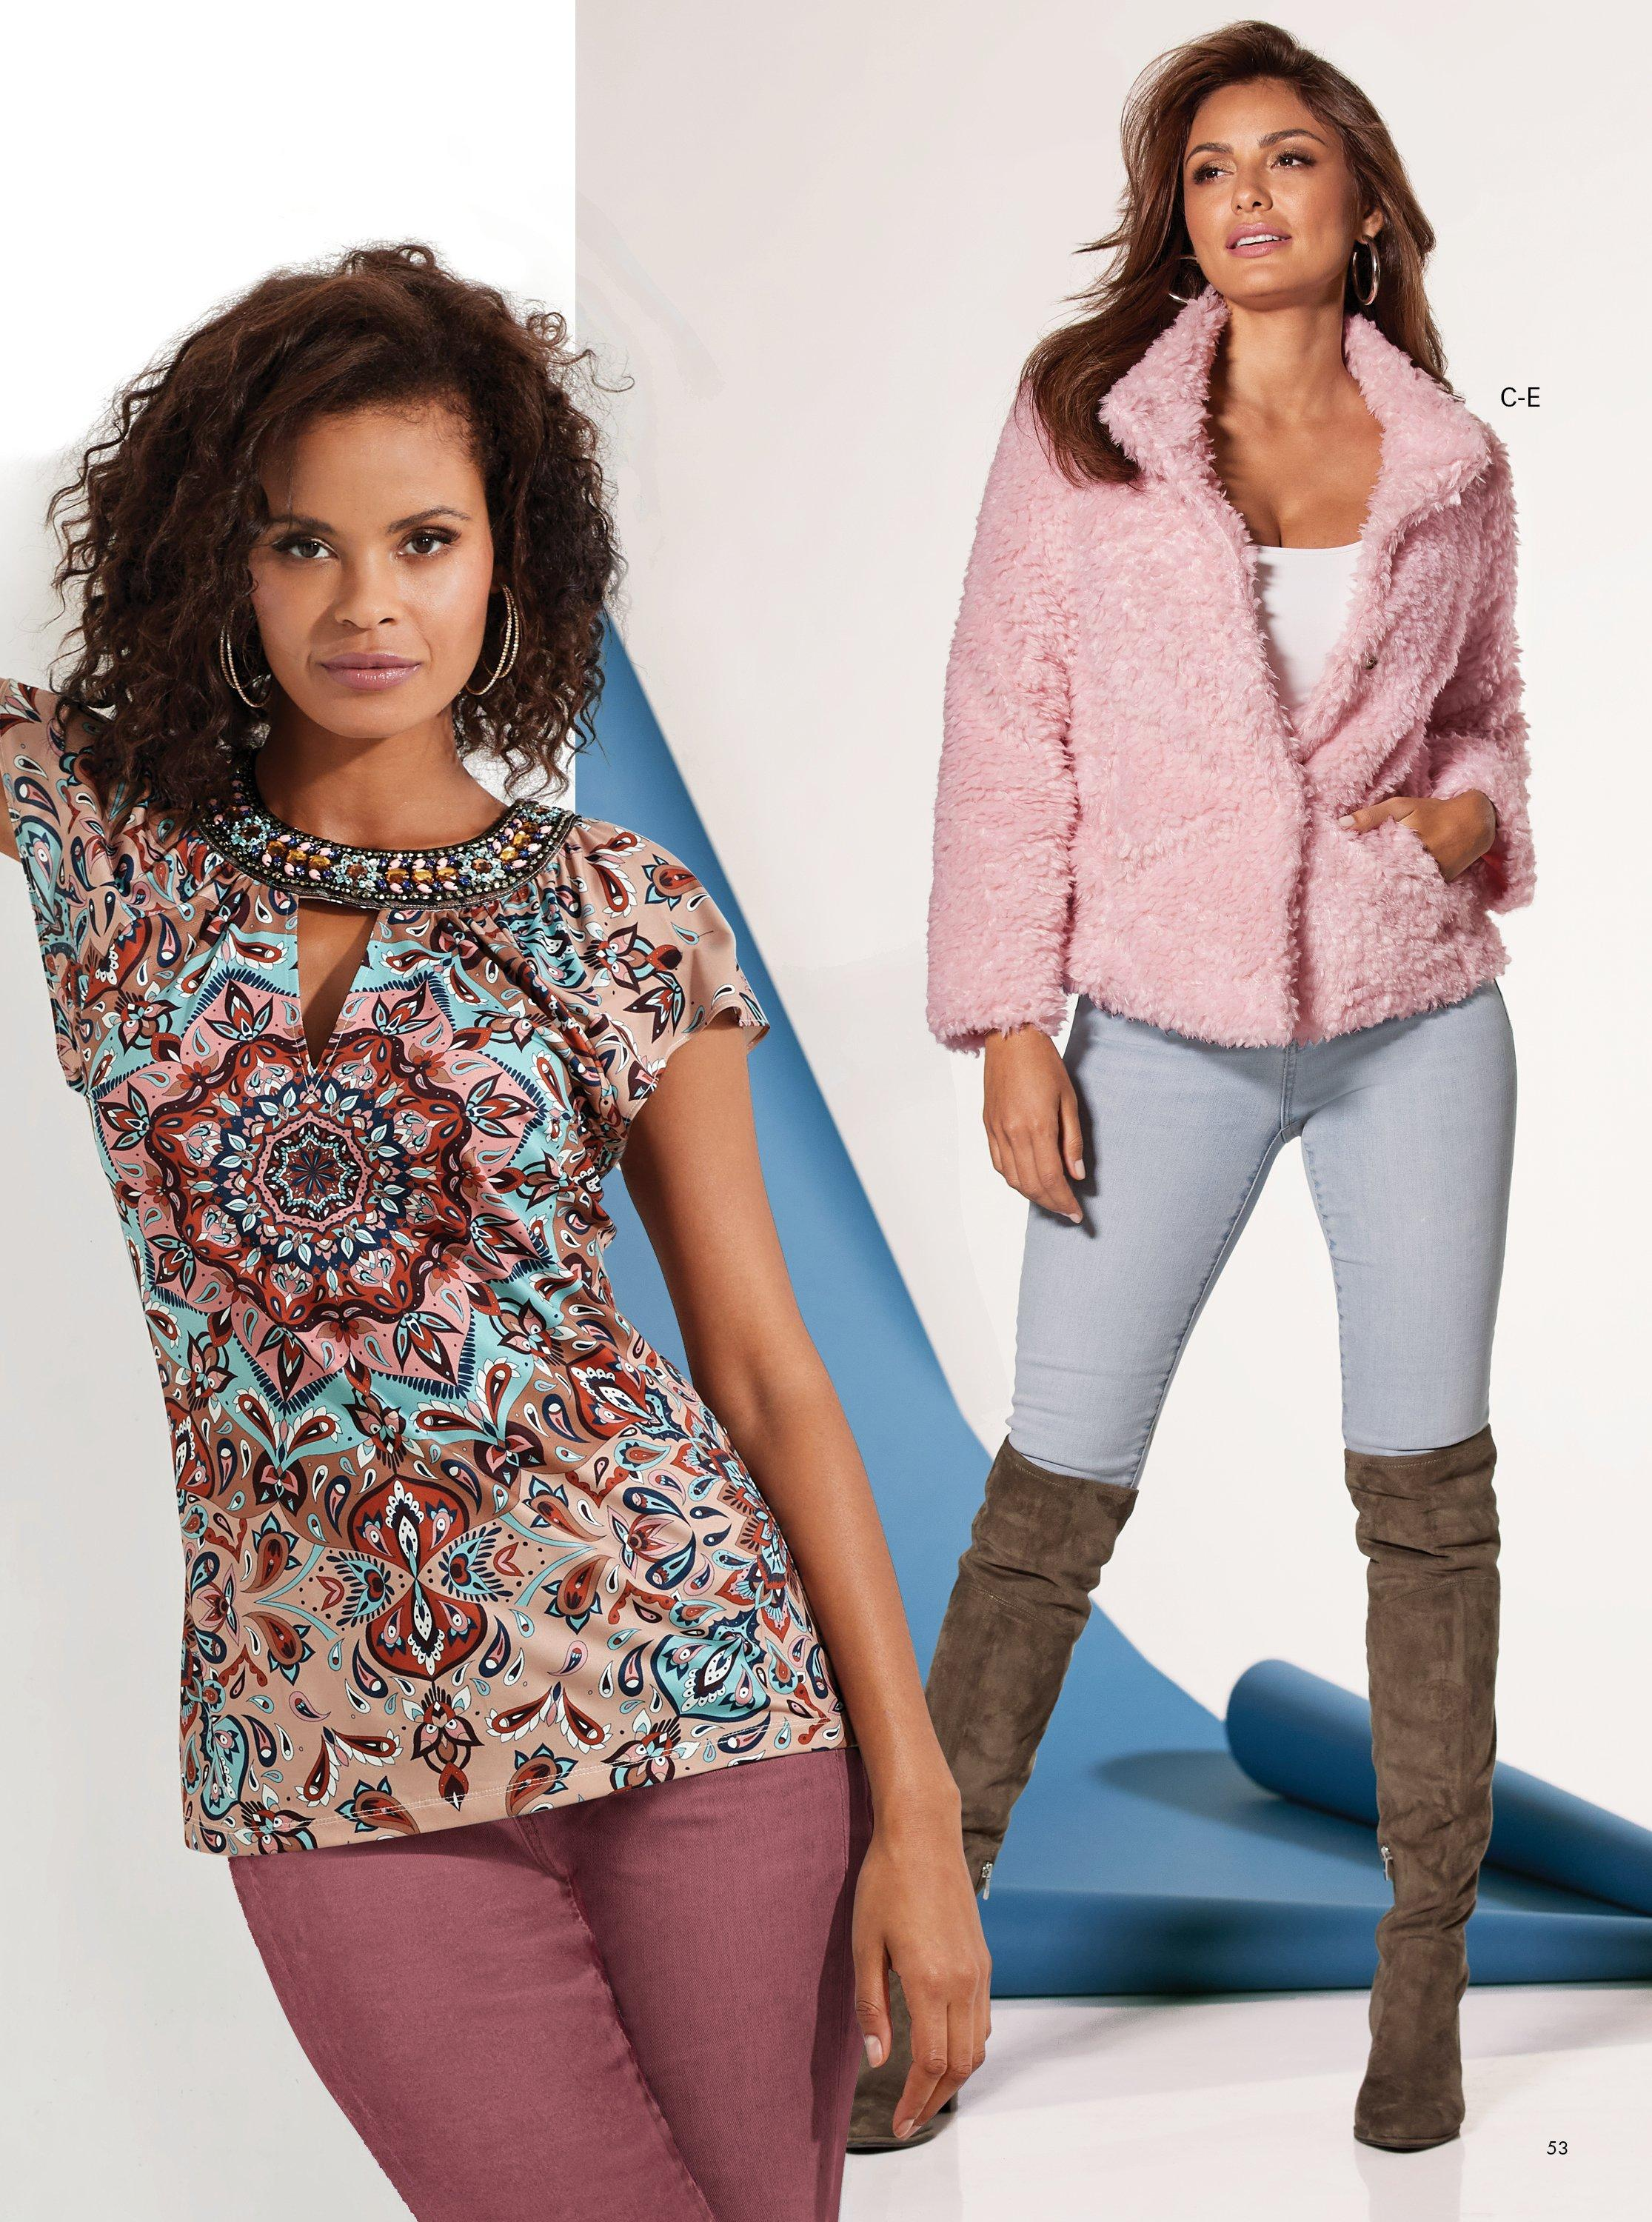 left model wearing a mixed print jewel embellished short sleeve top and dark pink velvet pants. right model wearing a short pink teddy coat, white tank top, light wash jeans, and brown over-the-knee boots.